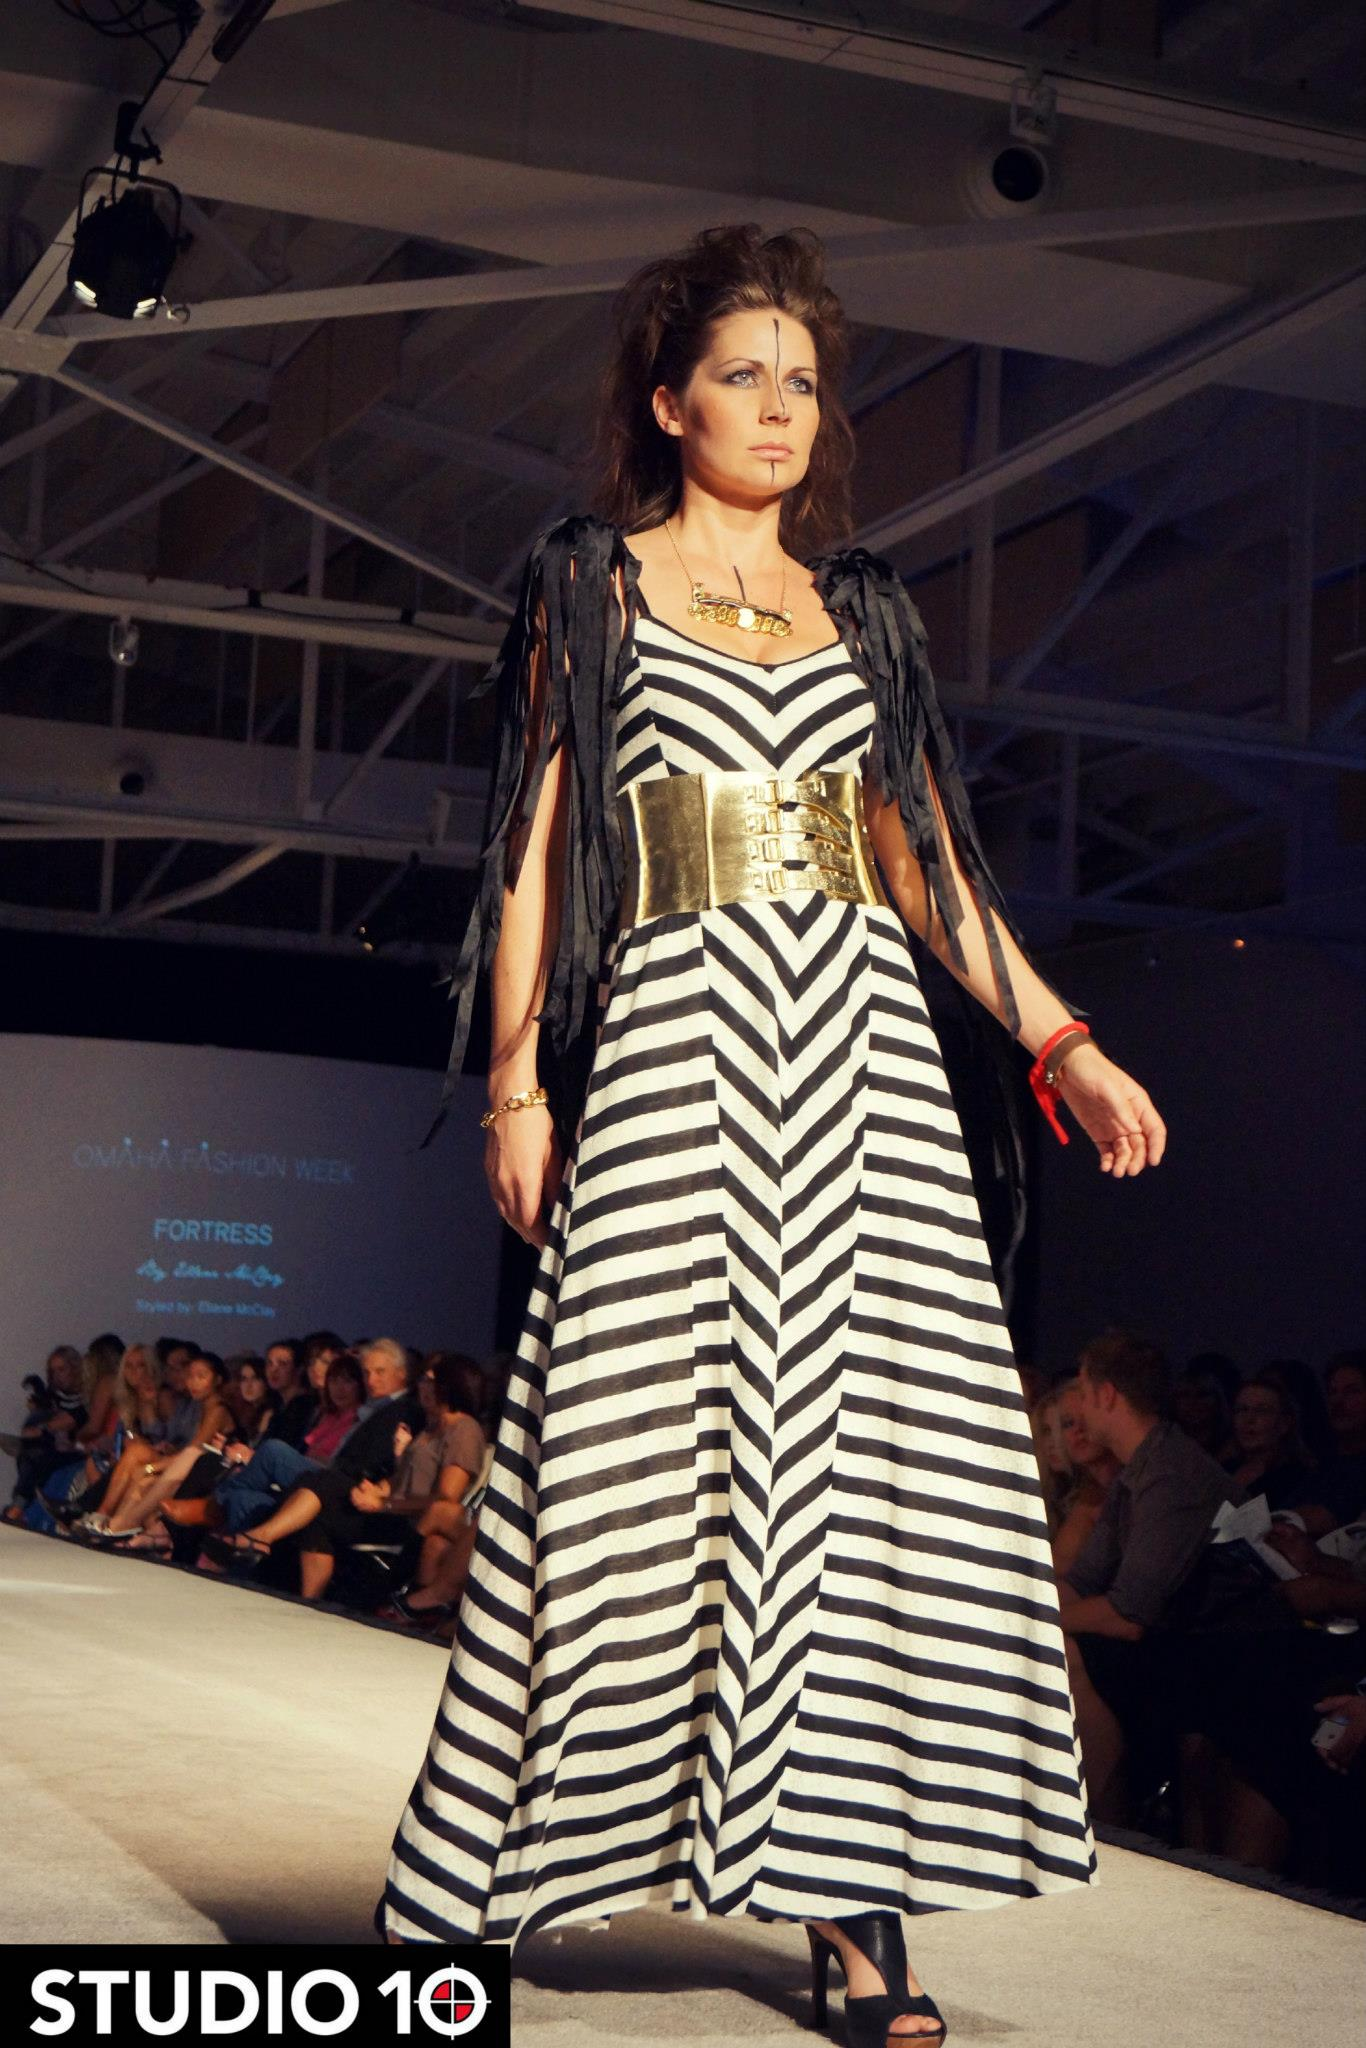 faith ofw chevron dress.jpg